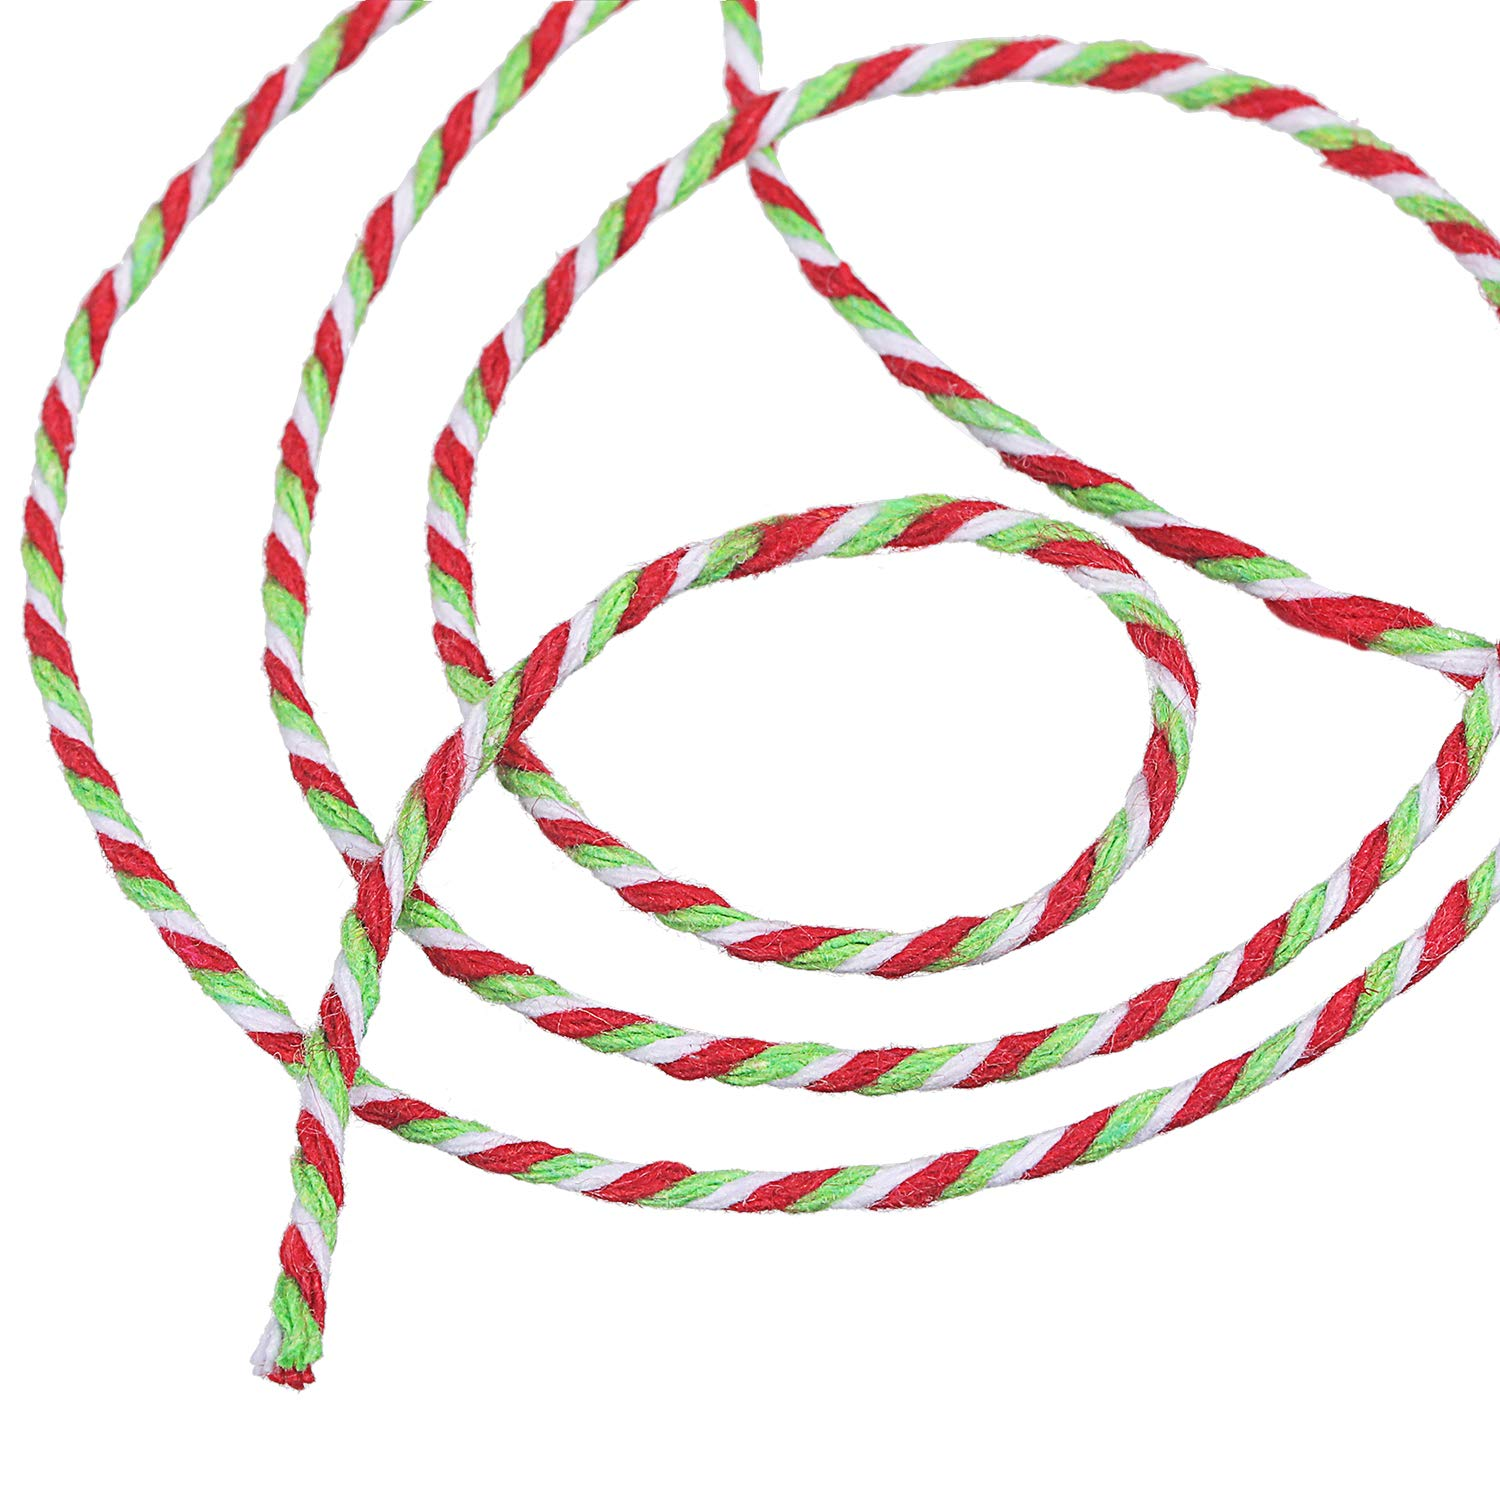 Cooking String 328 Feet Bakers Twines for Arts Crafts and Gift Wrapping eBoot Cotton Kitchen Twine Christmas Red and Green